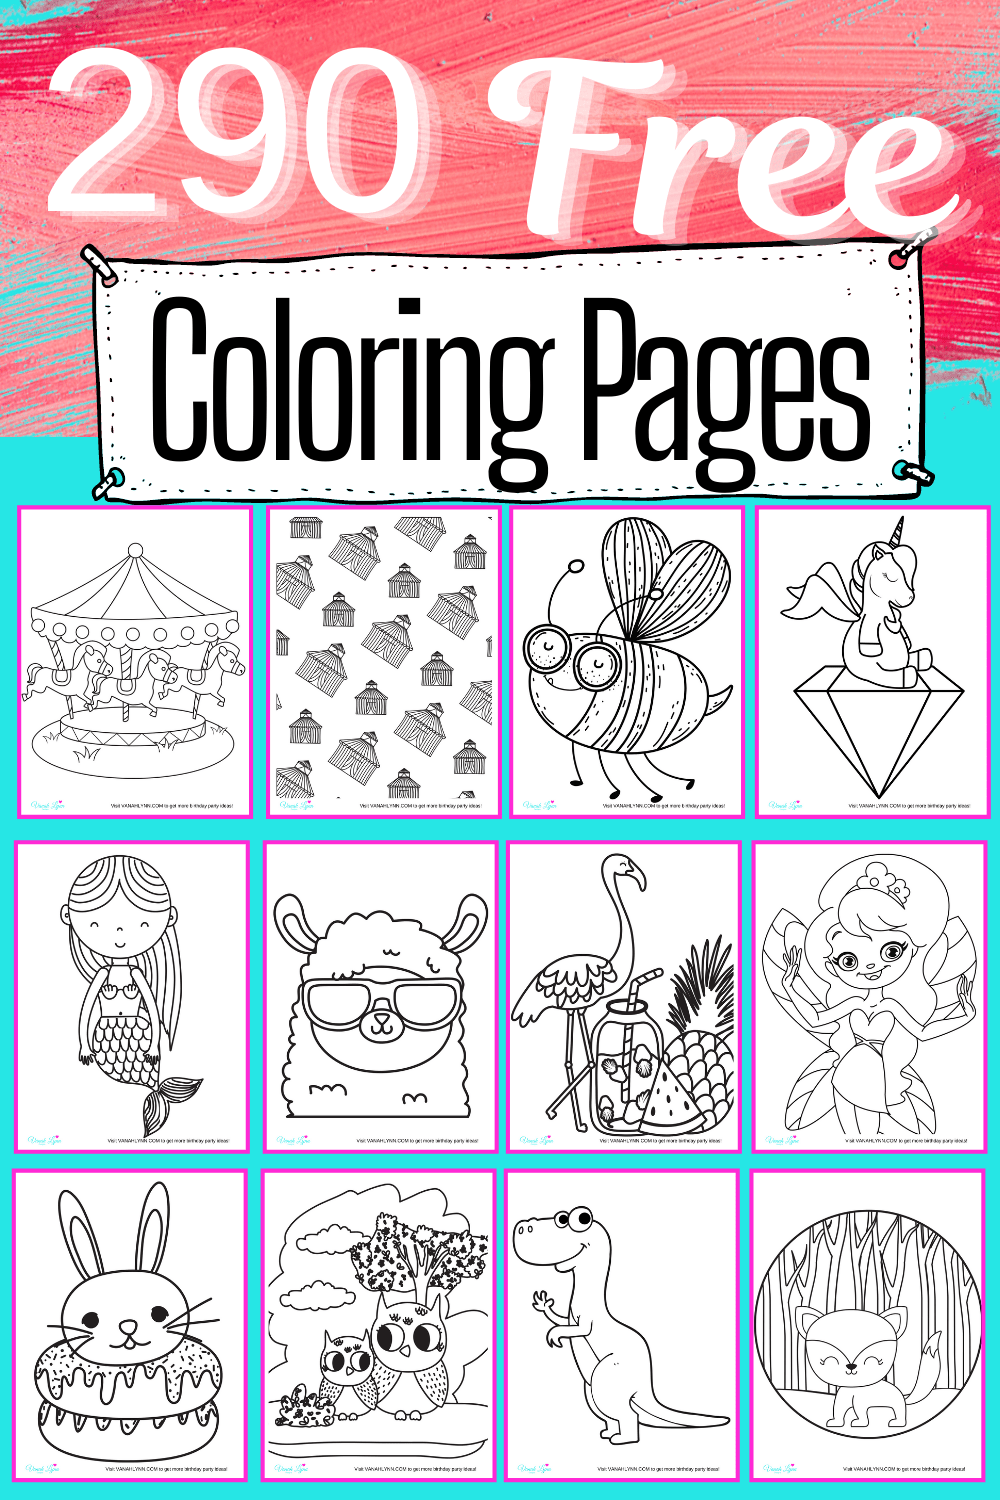 coloring pages for girls kids- 290 page set